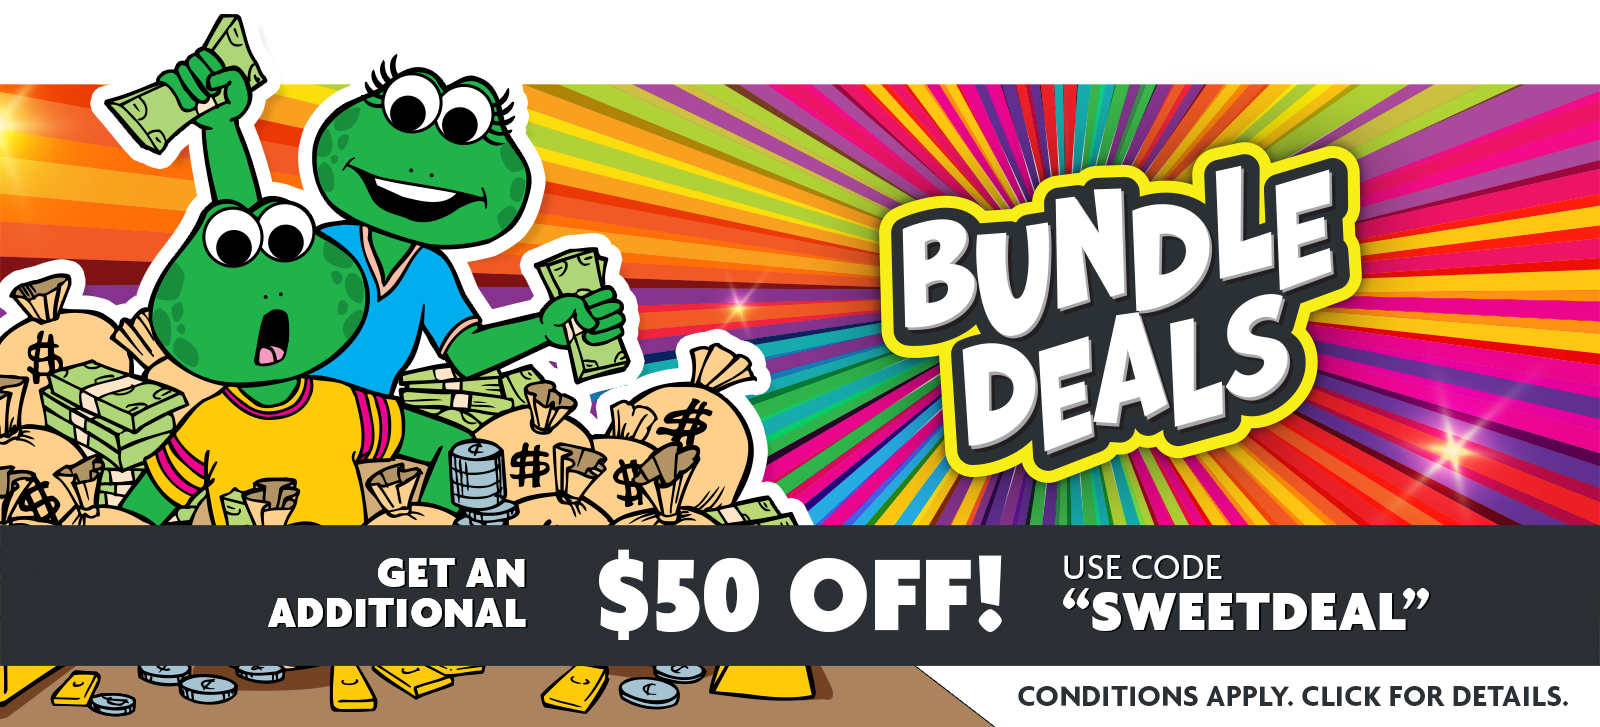 Get an additional $50 OFF Bundle Deals through September 30!